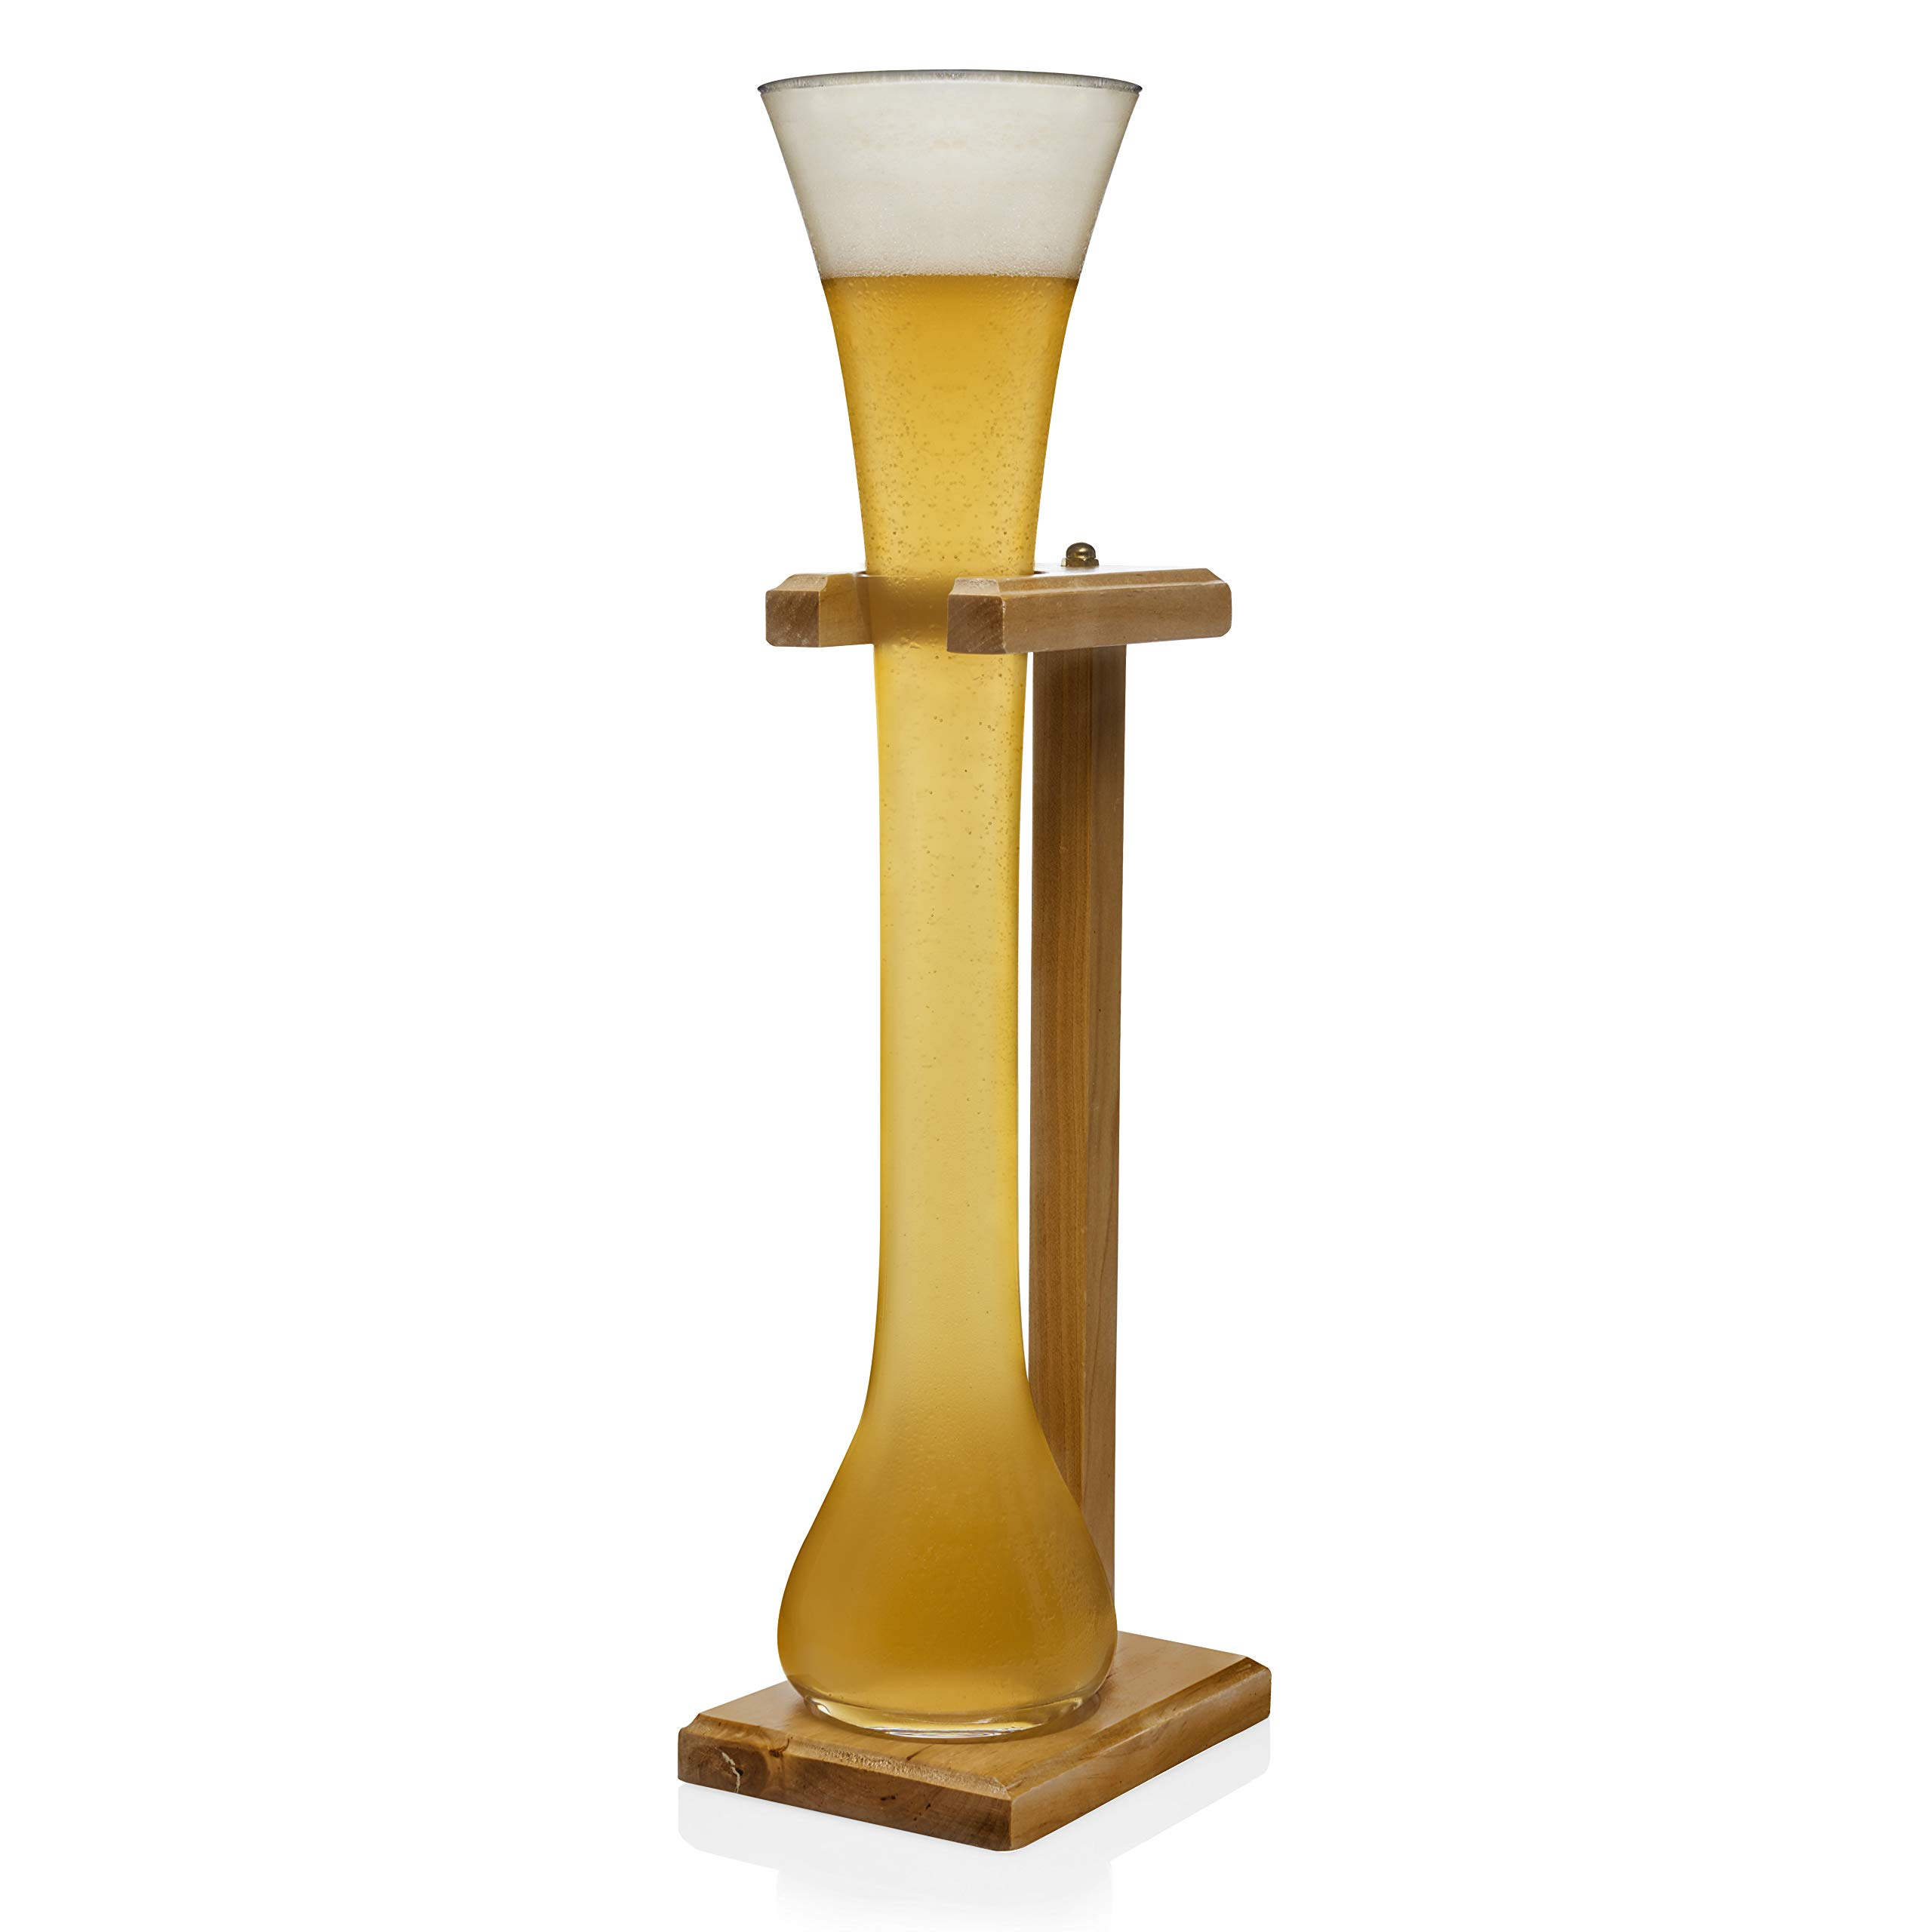 Libbey Craft Brews Half-Yard of Ale Beer Glass with Wood Stand, 32-ounce